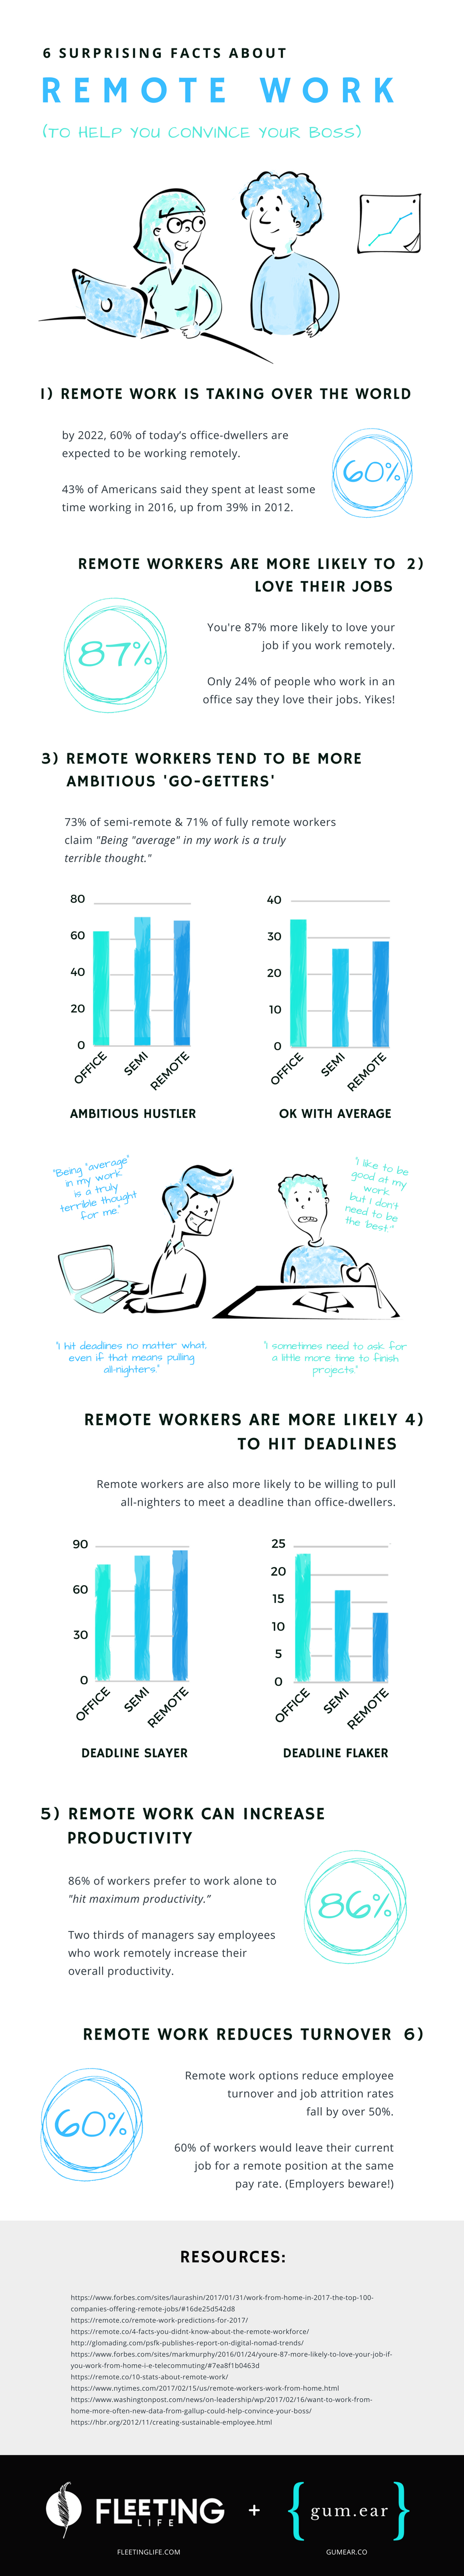 6 surprising facts about remote work infographic.png